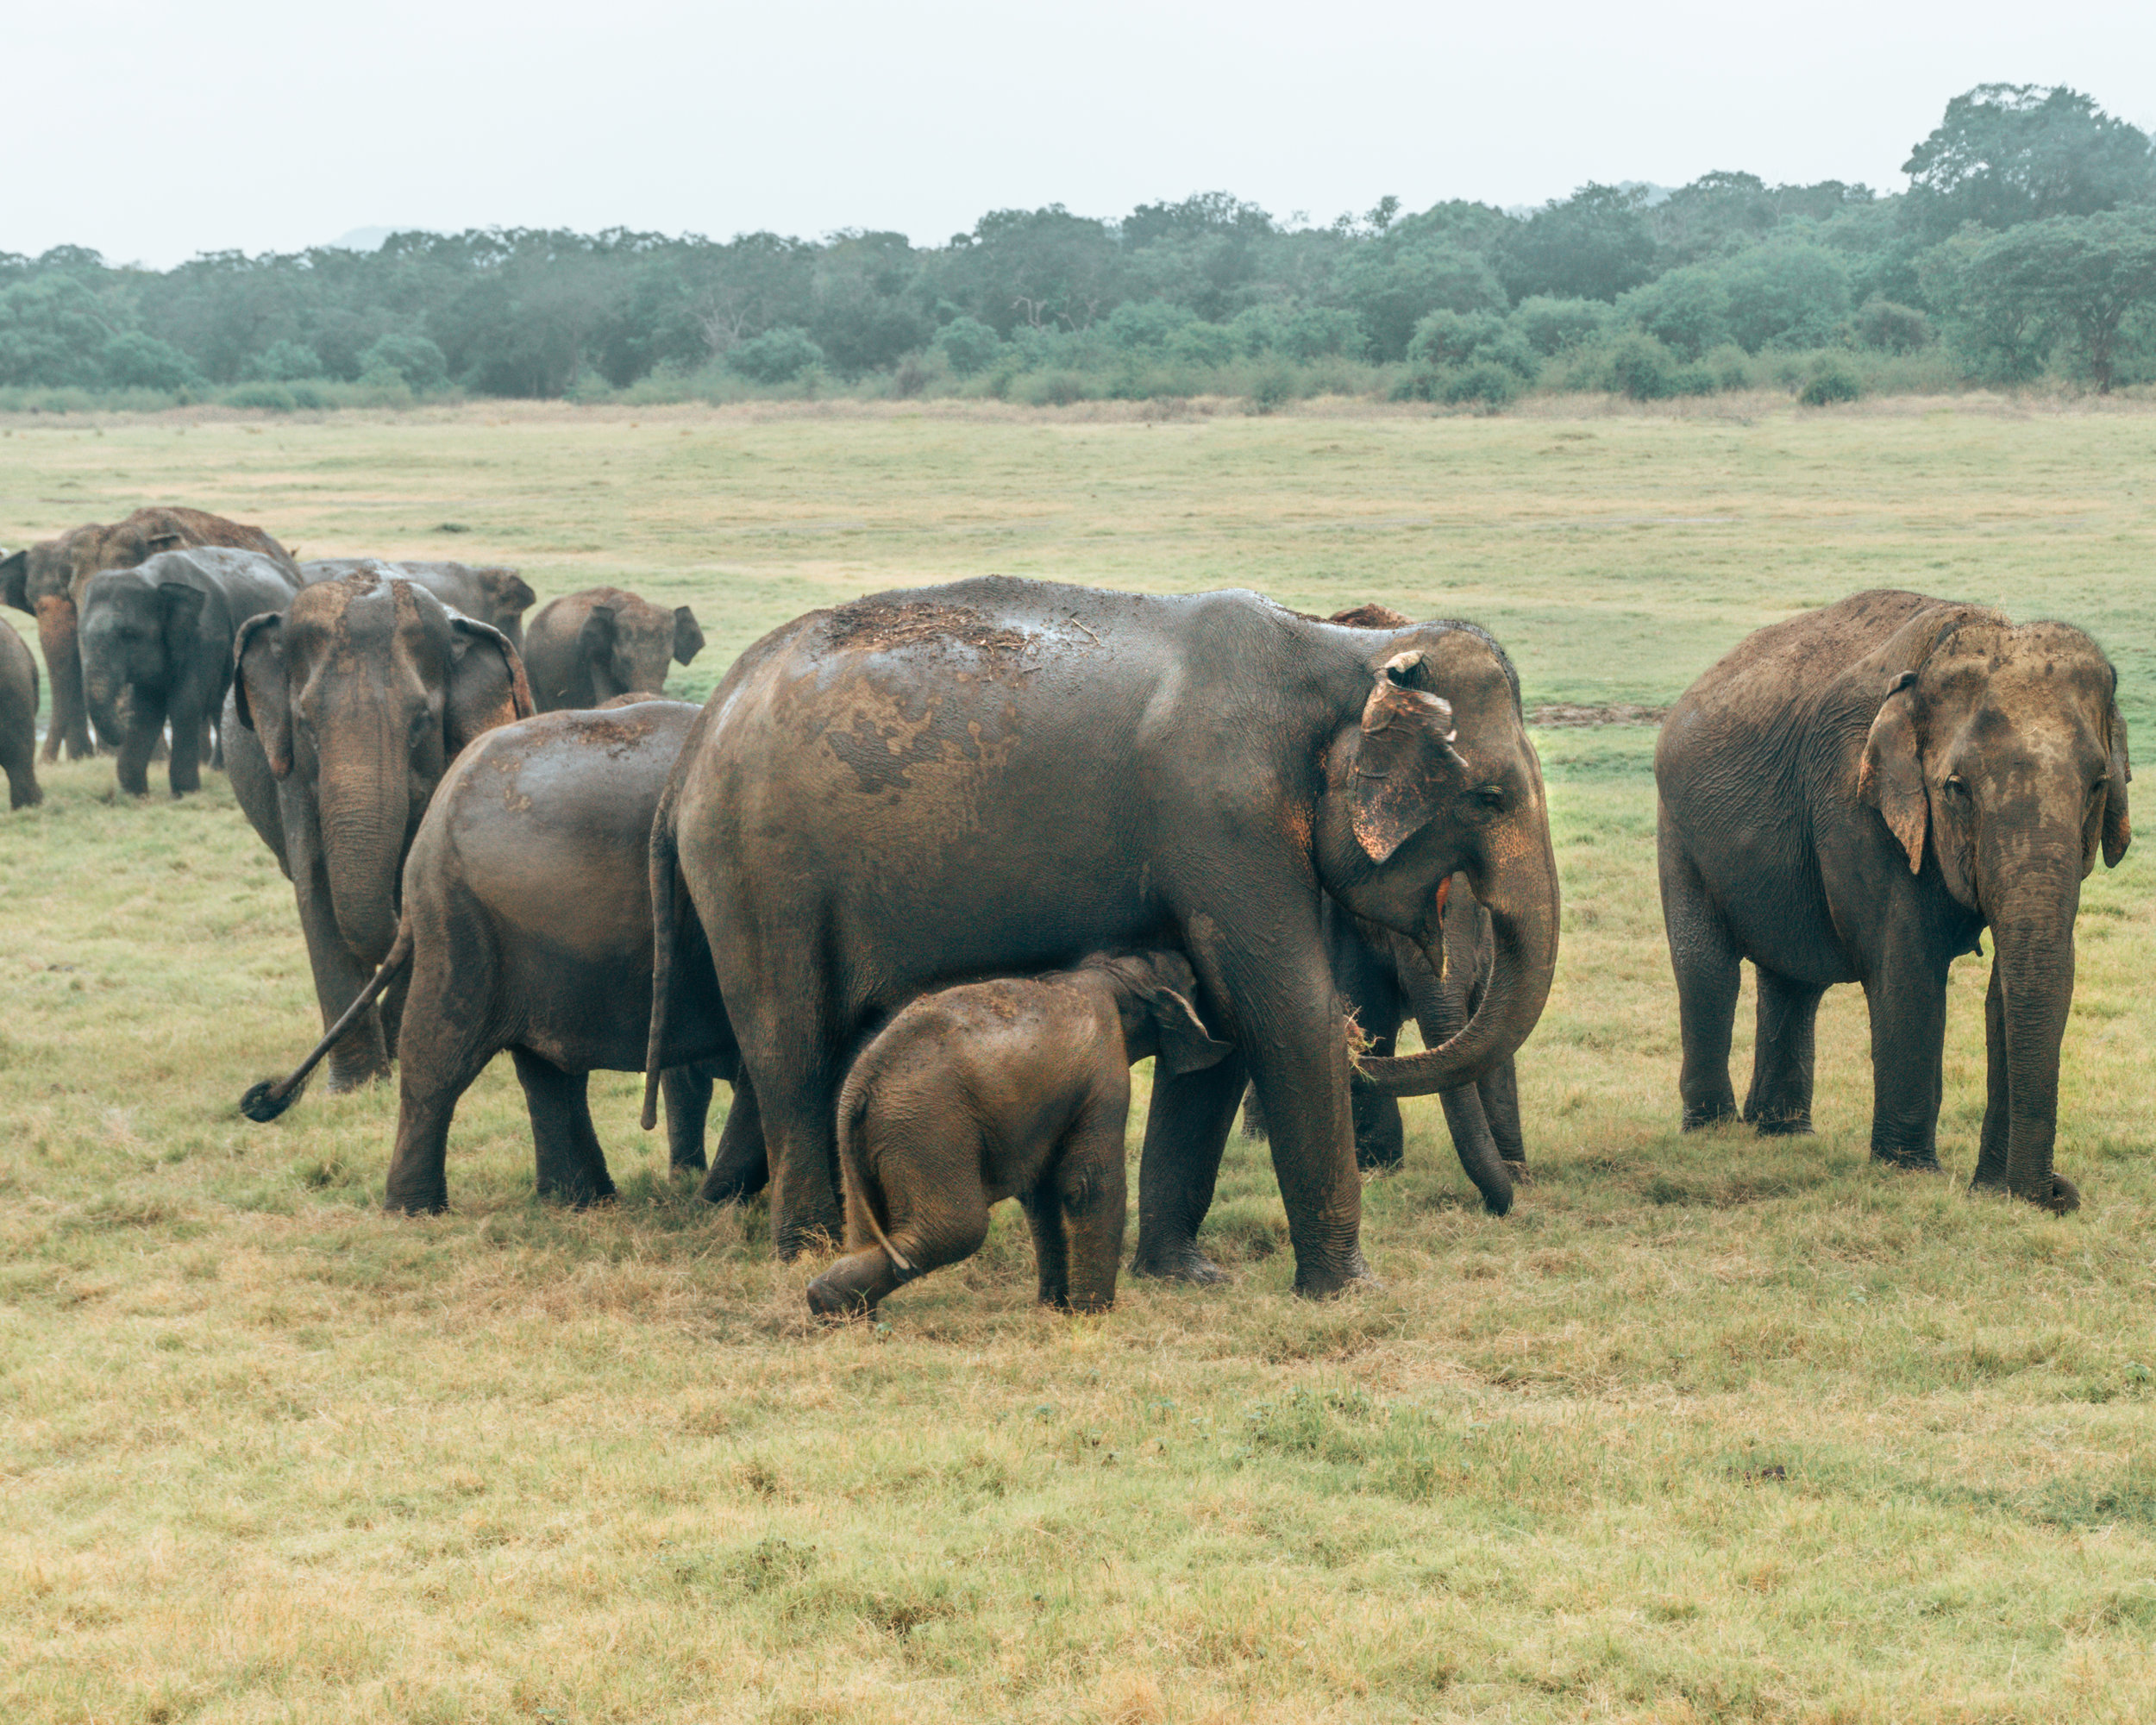 Travel like a local - A guide to traveling in Sri Lanka - Craving Adventure - Elephant - Safari - Blog